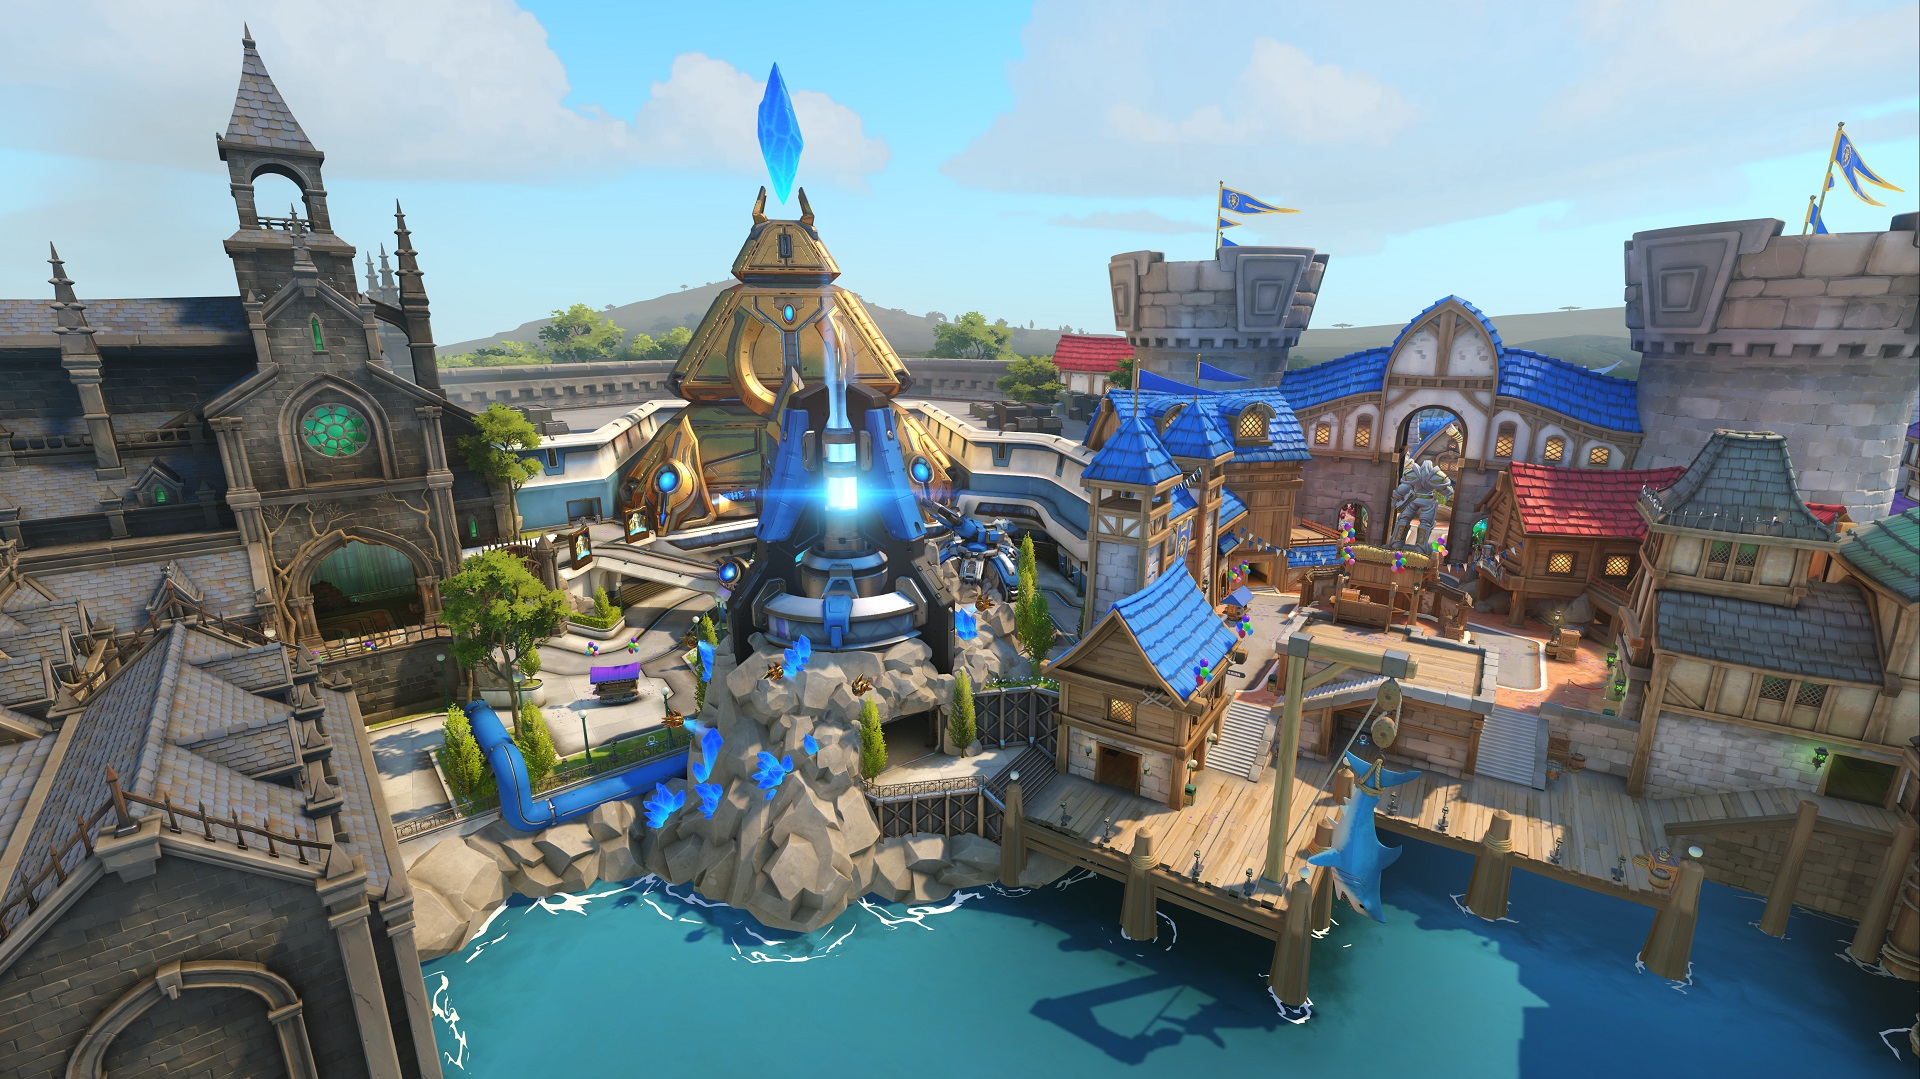 Hands on with Overwatch's Moira on Blizzard World Map at BlizzCon